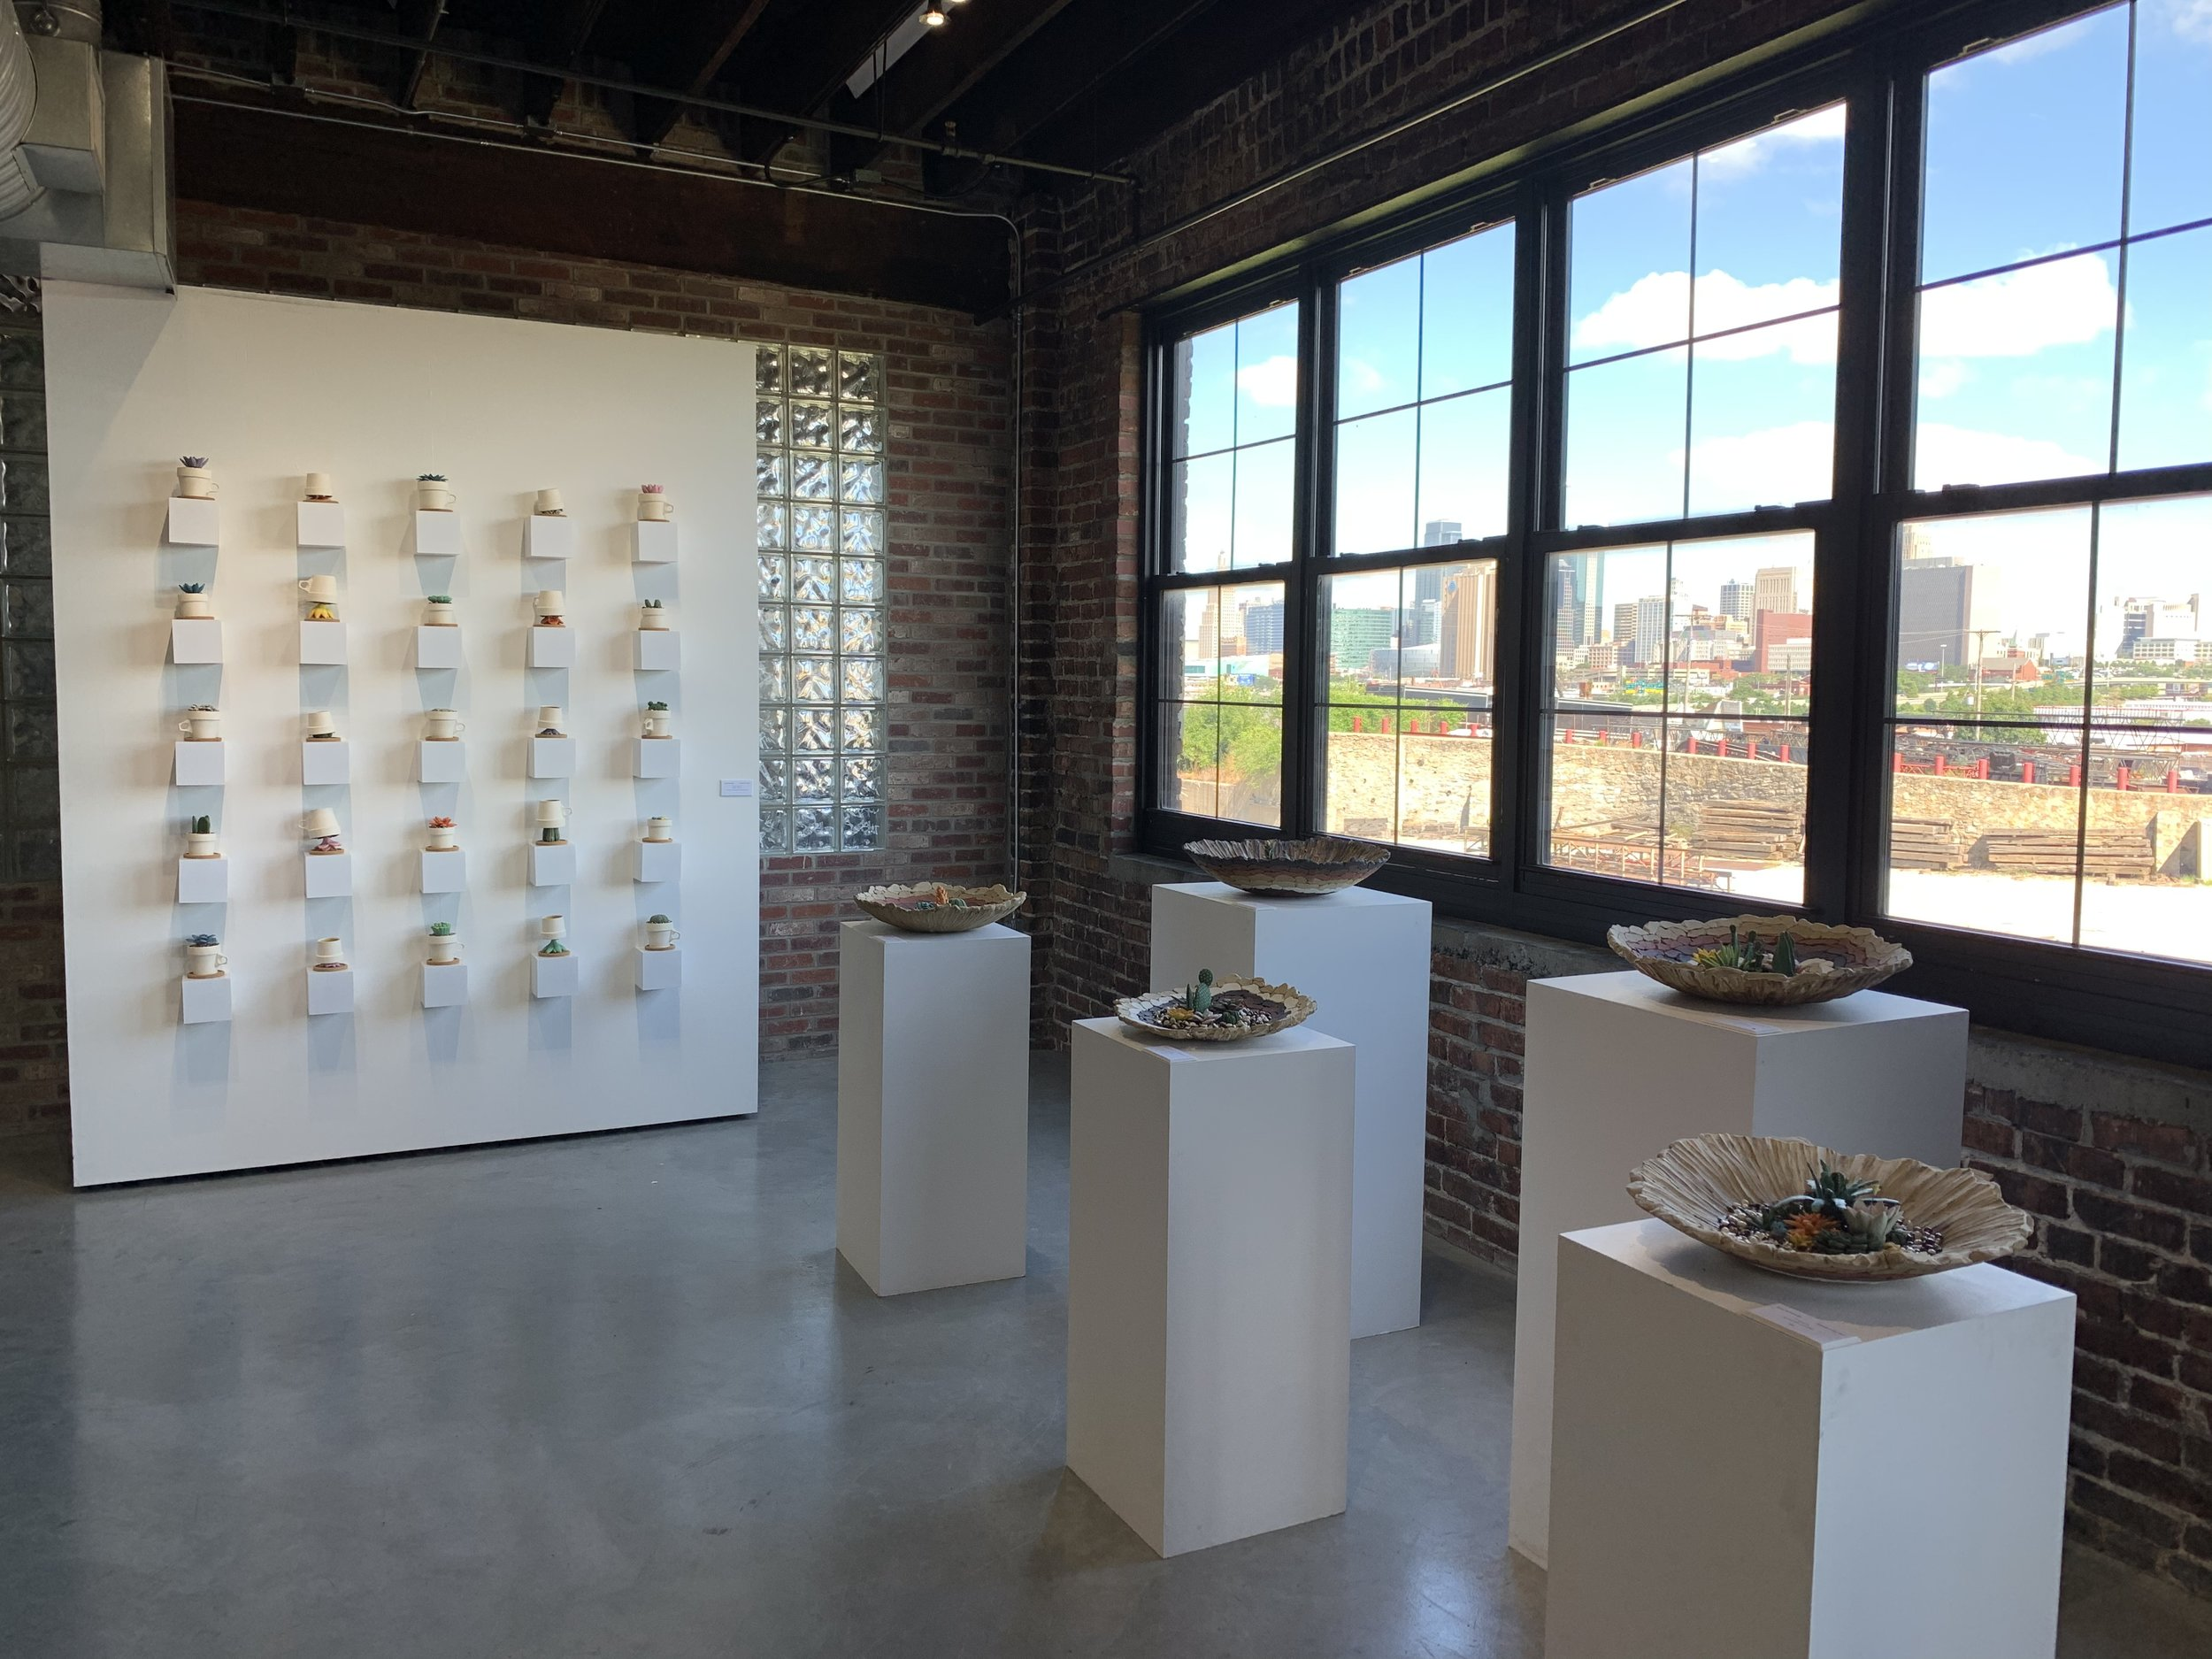 """Image: Installation view from """"Amalgam"""" The Annual Resident Exhibition at Belger Crane Yard Studios"""